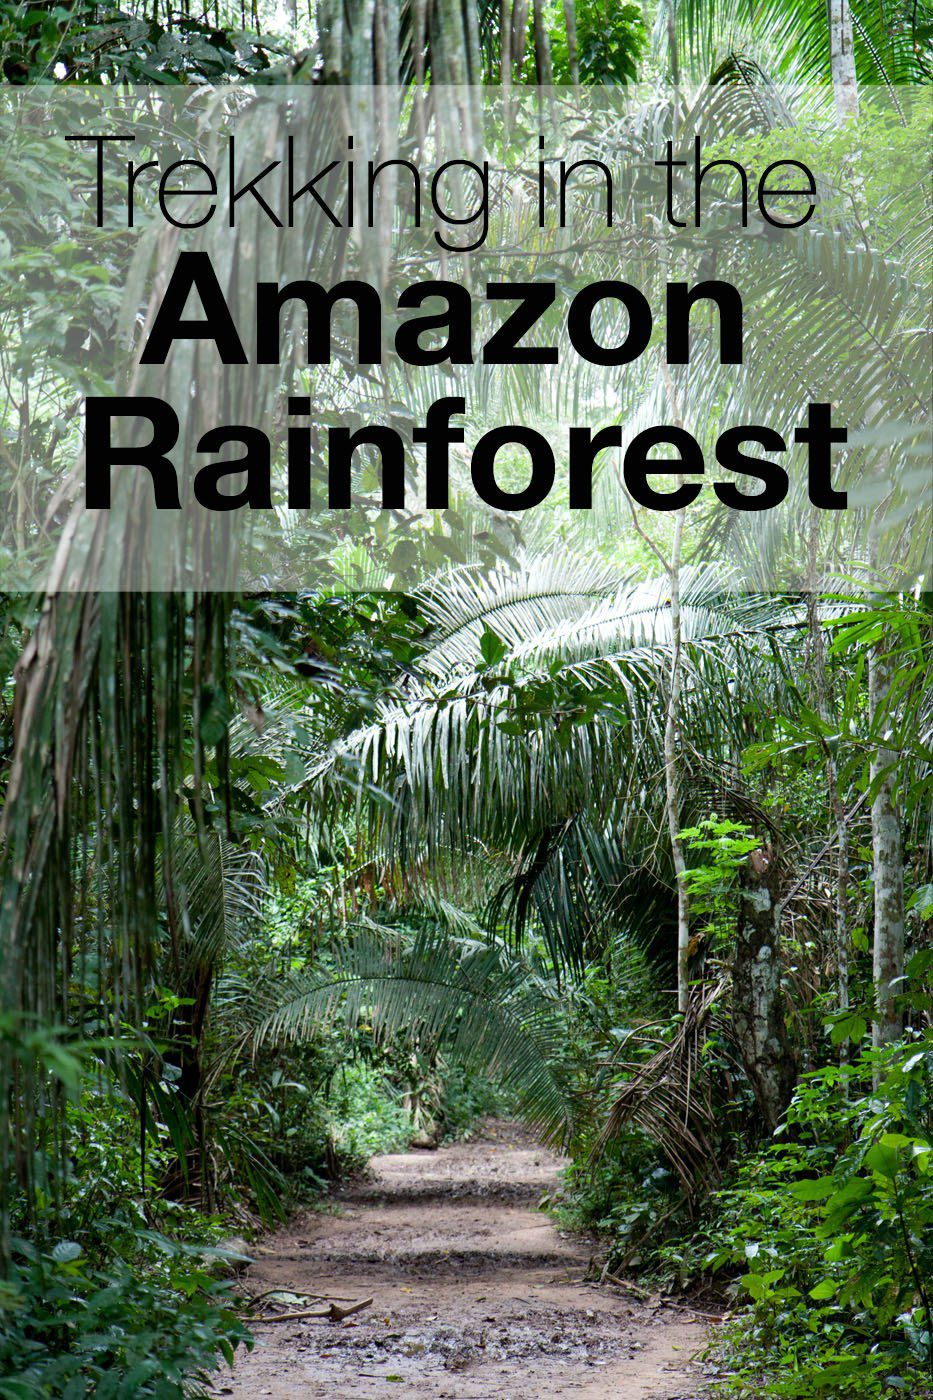 Trekking in the Amazon Rainforest